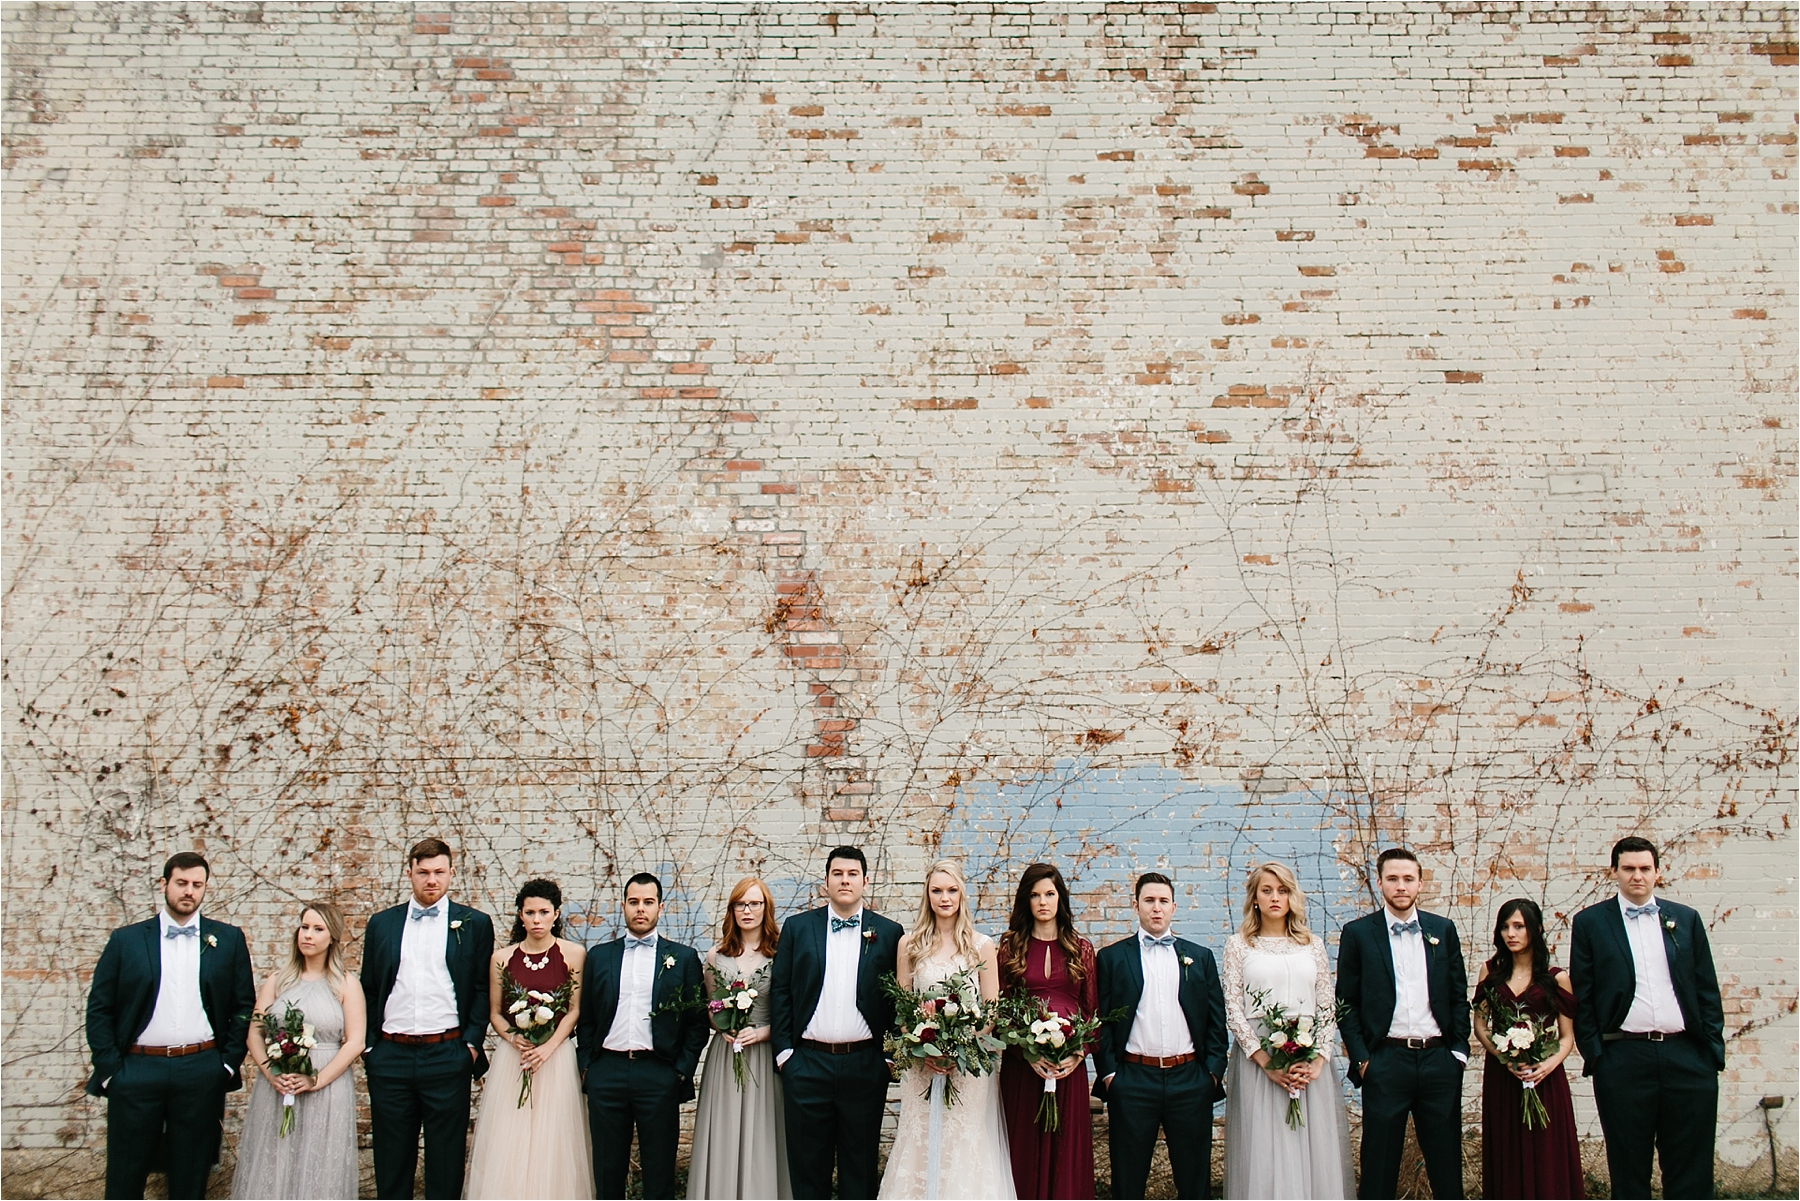 an organic, romantic, whimsical wedding at Brik Venue with Blue Grey, Burgandy, and pops of navy gold + white accents by North Texas Wedding Photographer Rachel Meagan Photography __ 228